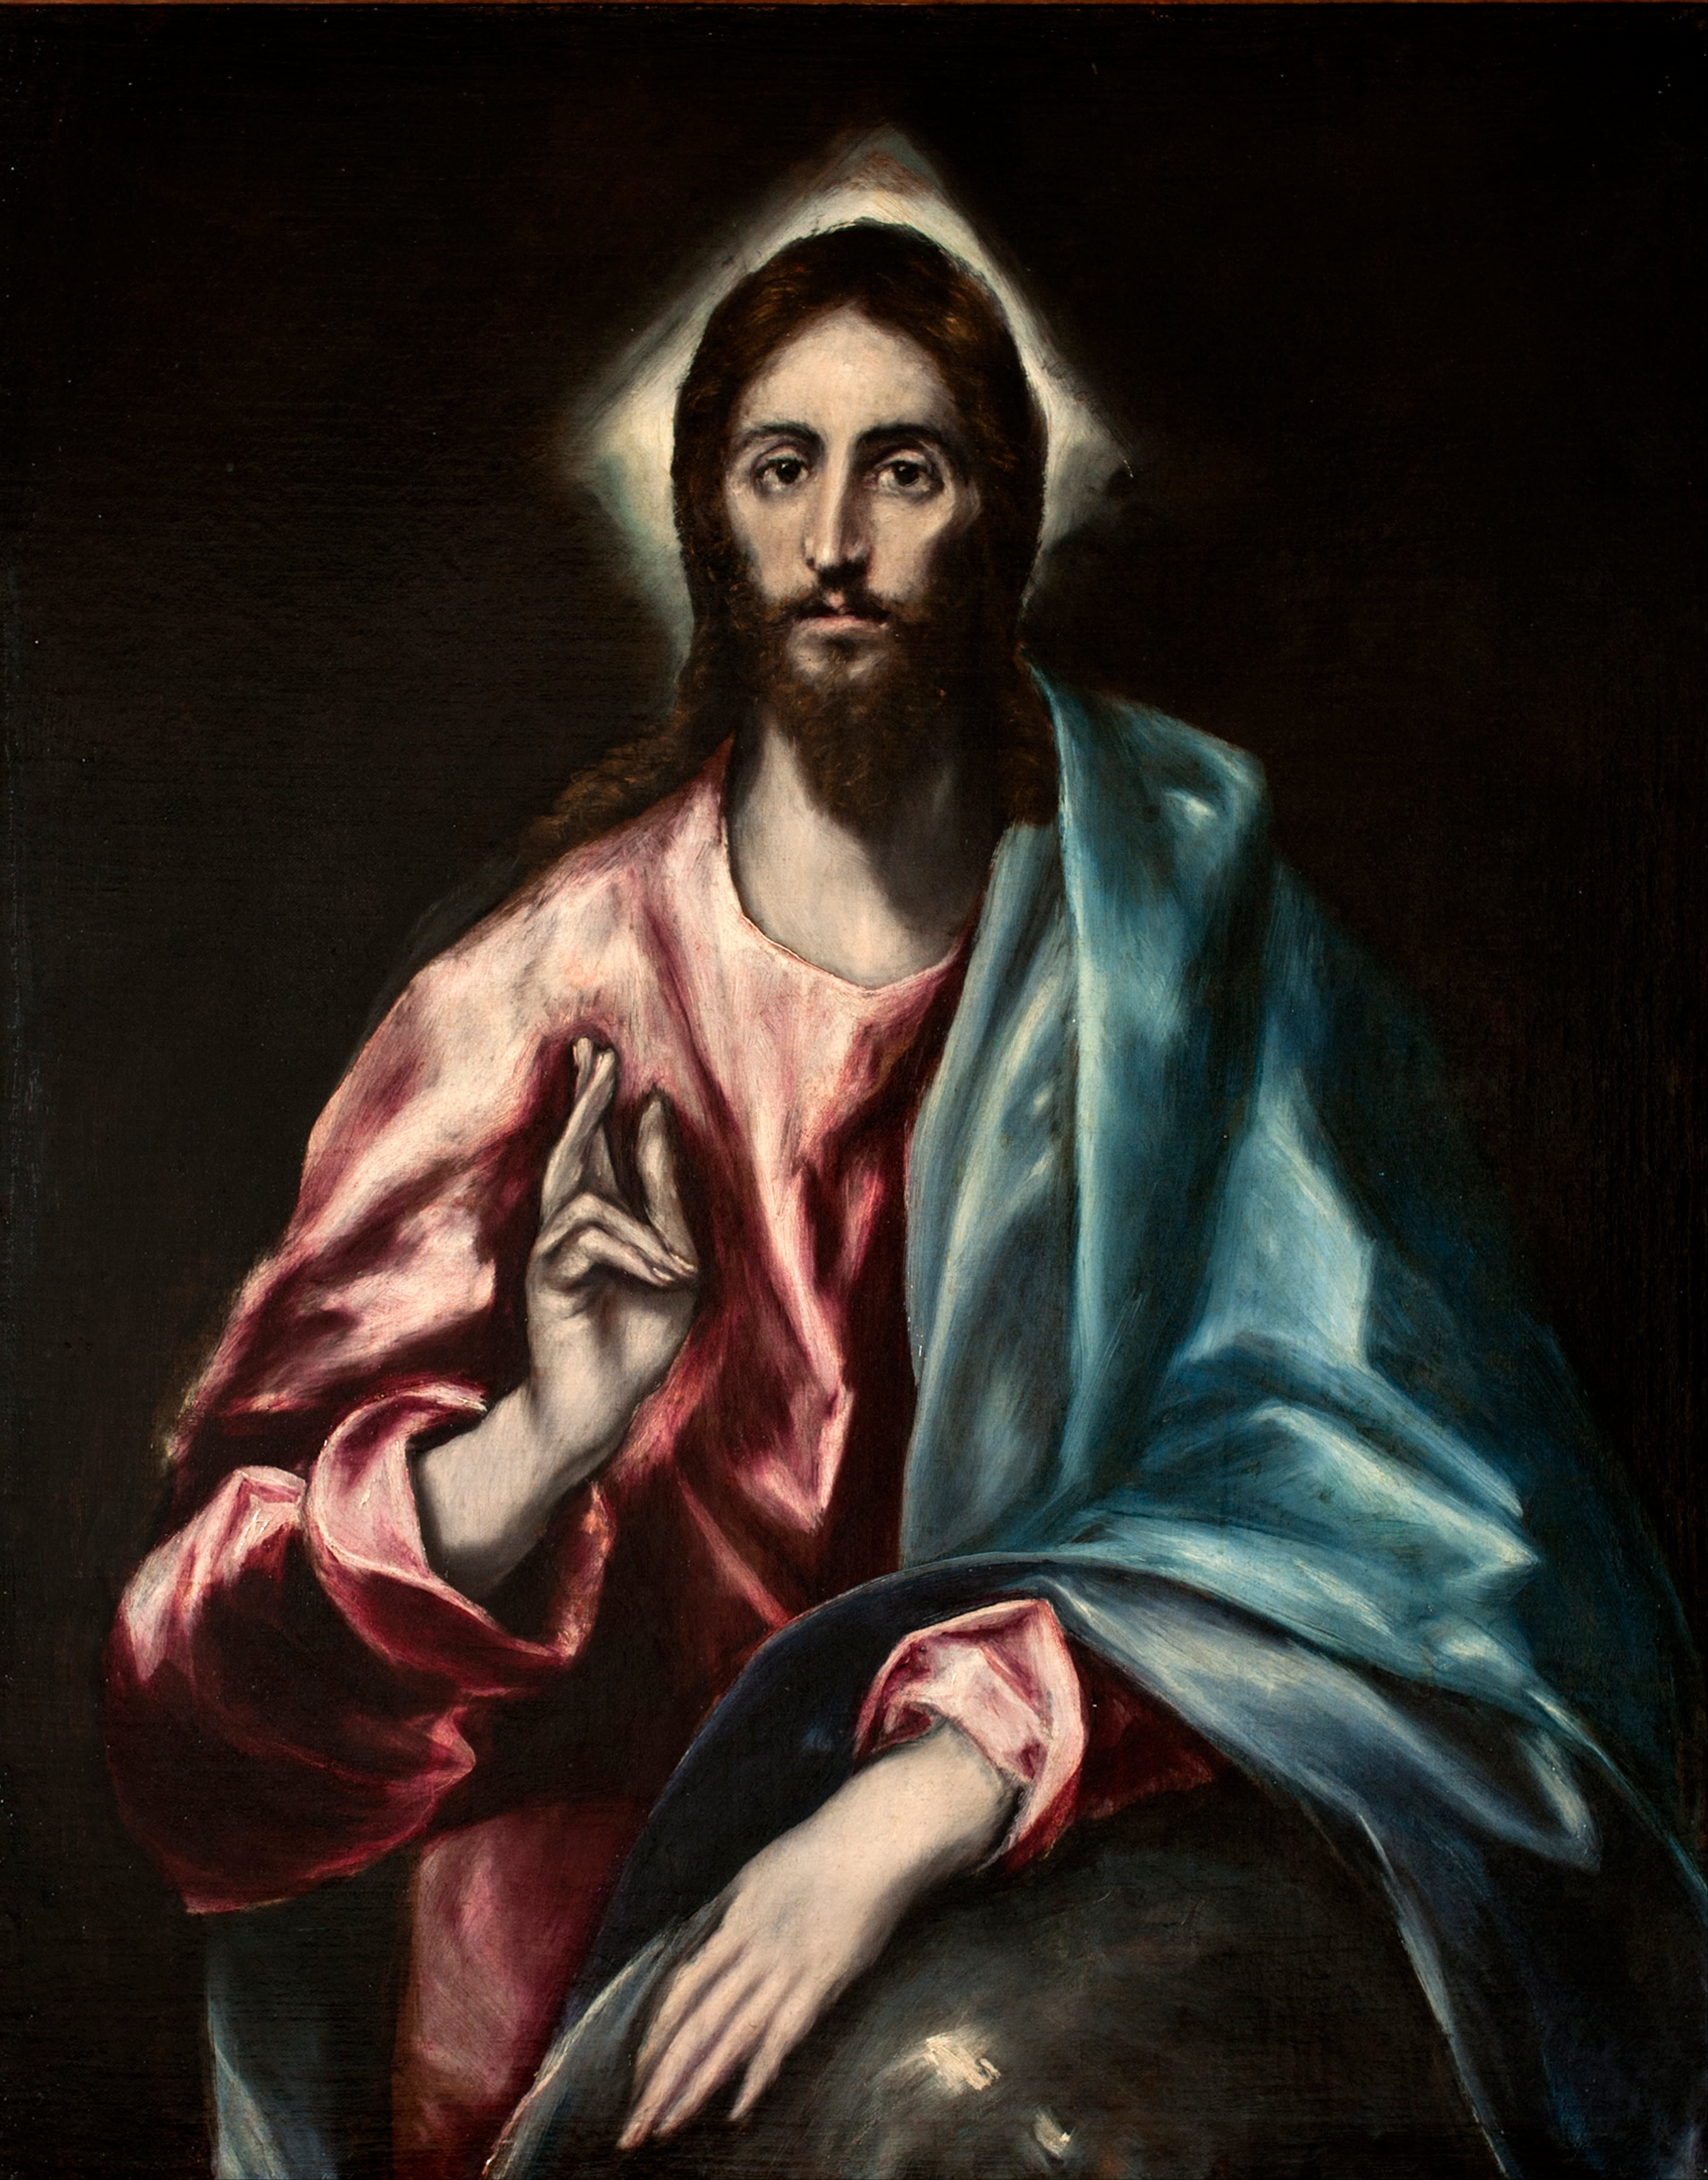 art history el greco El greco (the greek, 1541  he trained and became a master of that kind of art before travelling at 26 to venice, as other greek artists had done.